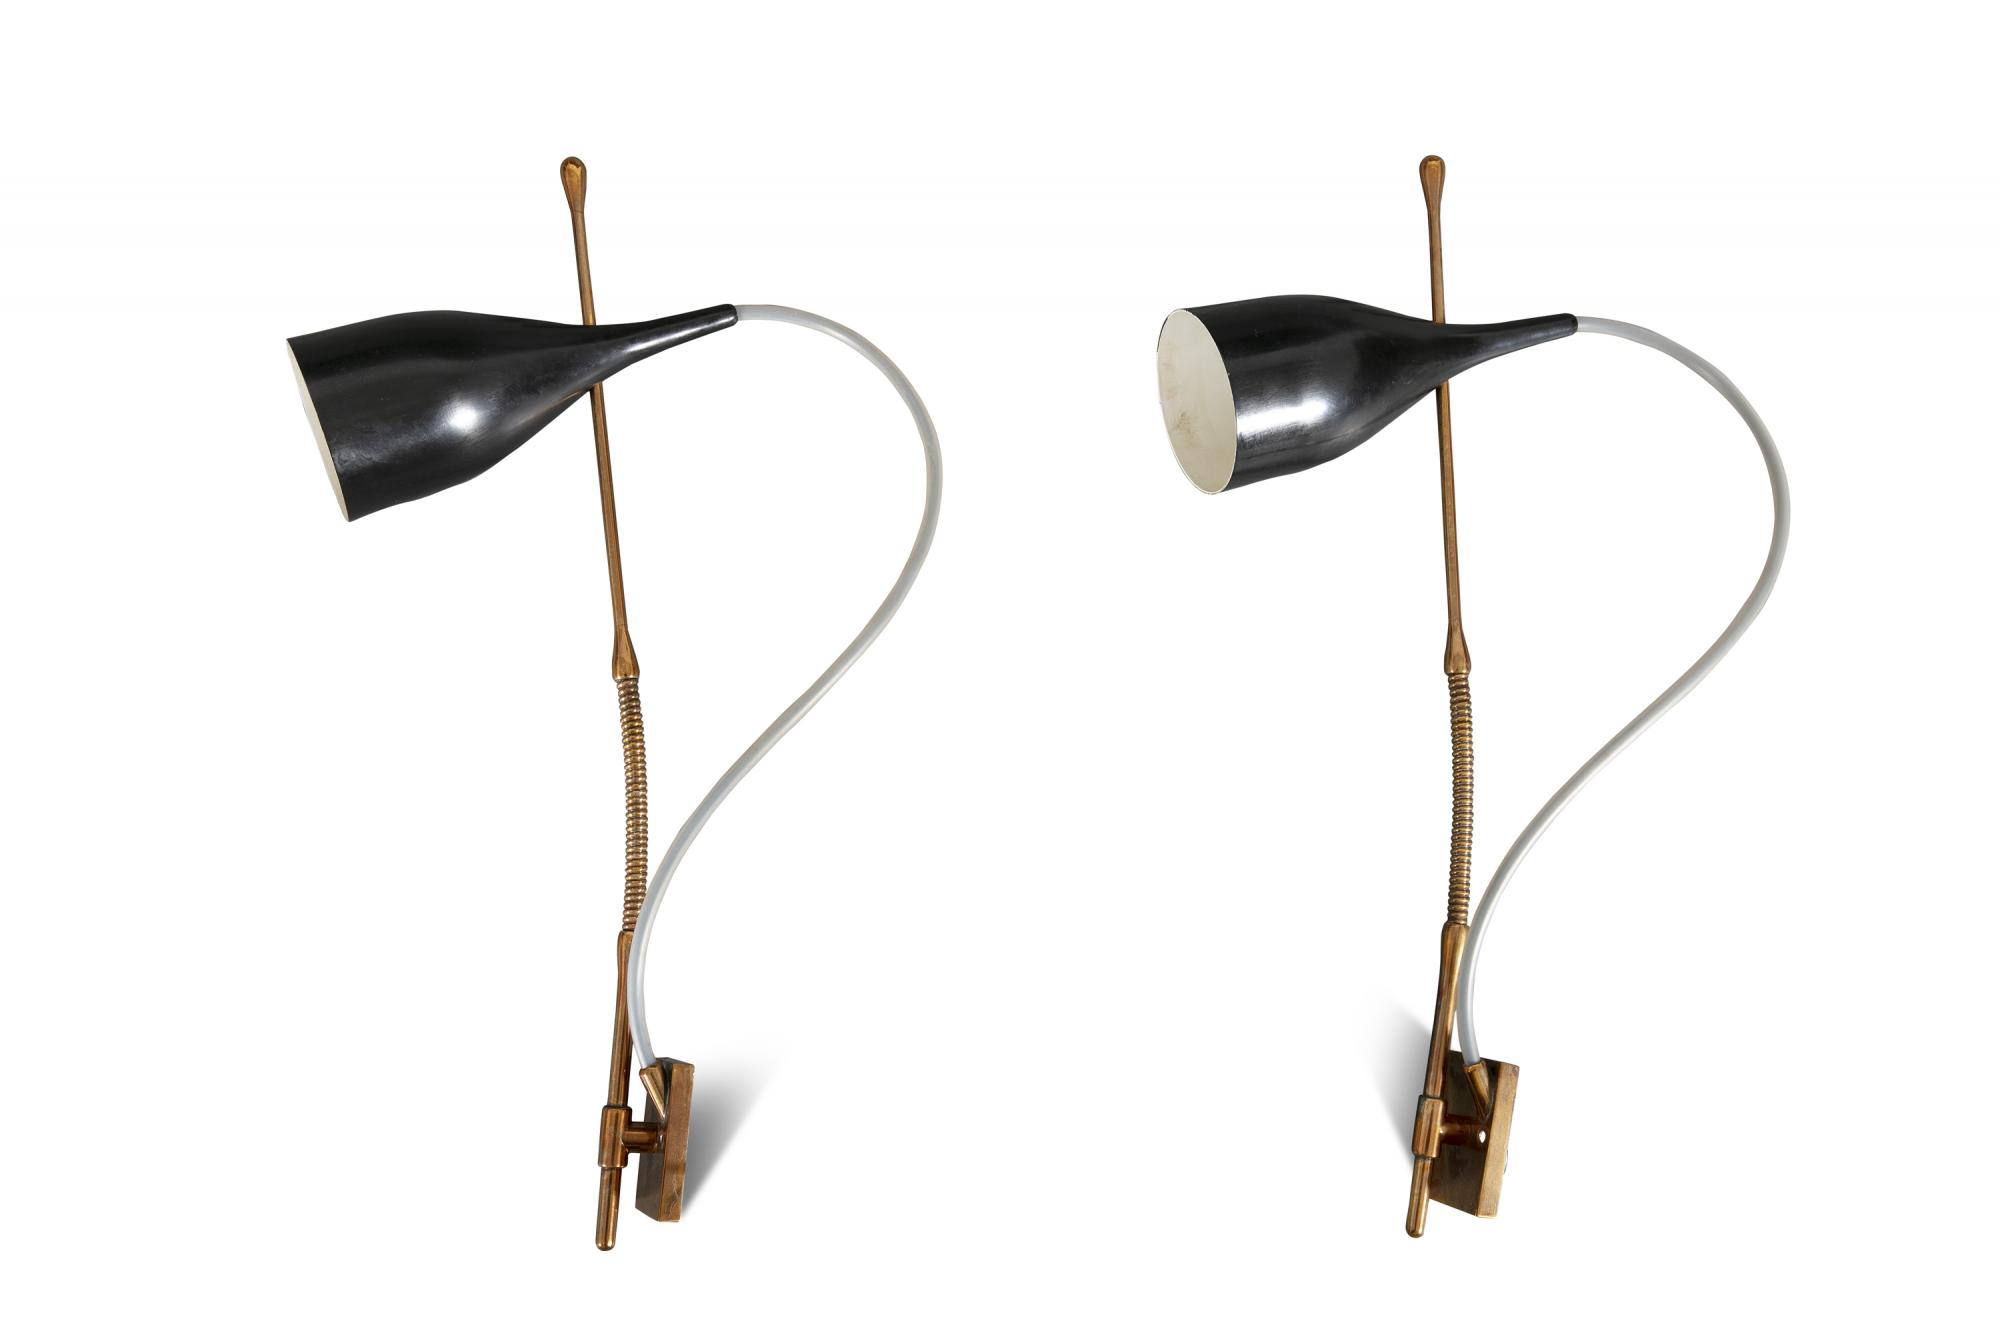 Lot:88 a pair of lucinella applique angelo lelli wall lights